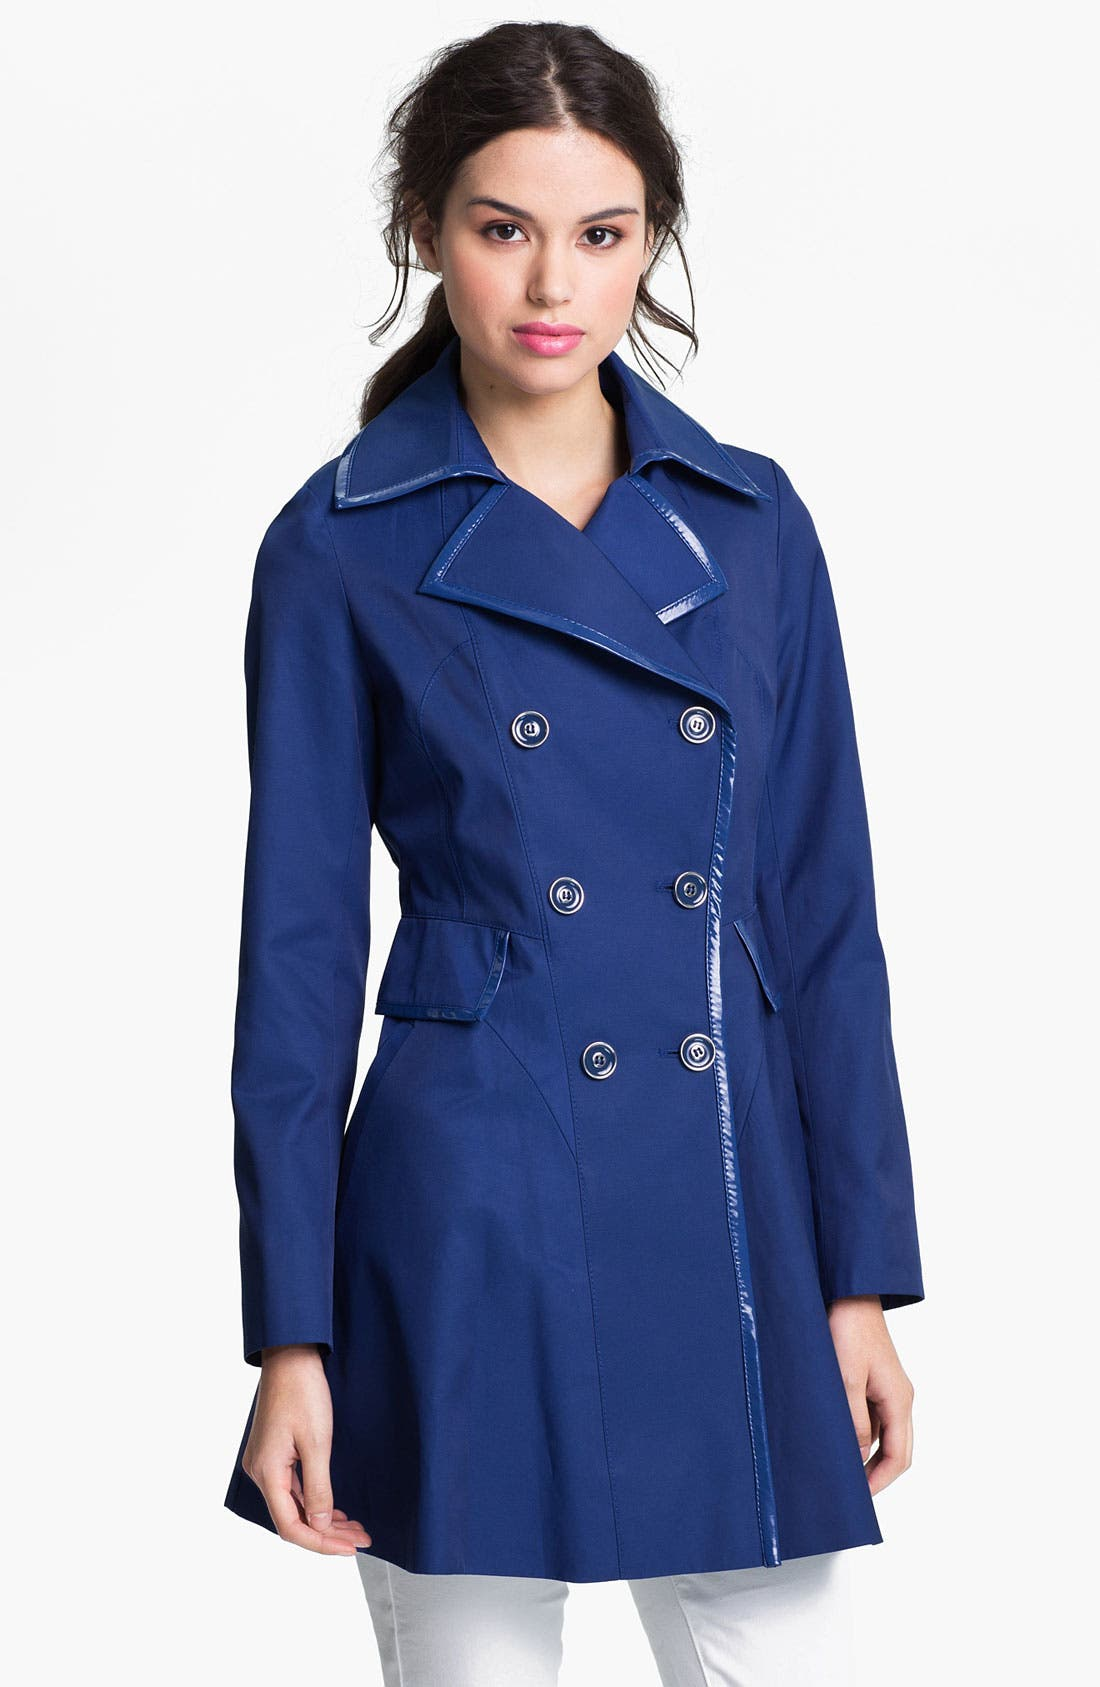 Alternate Image 1 Selected - Via Spiga Patent Trim Trench Coat (Regular & Petite) (Online Only)